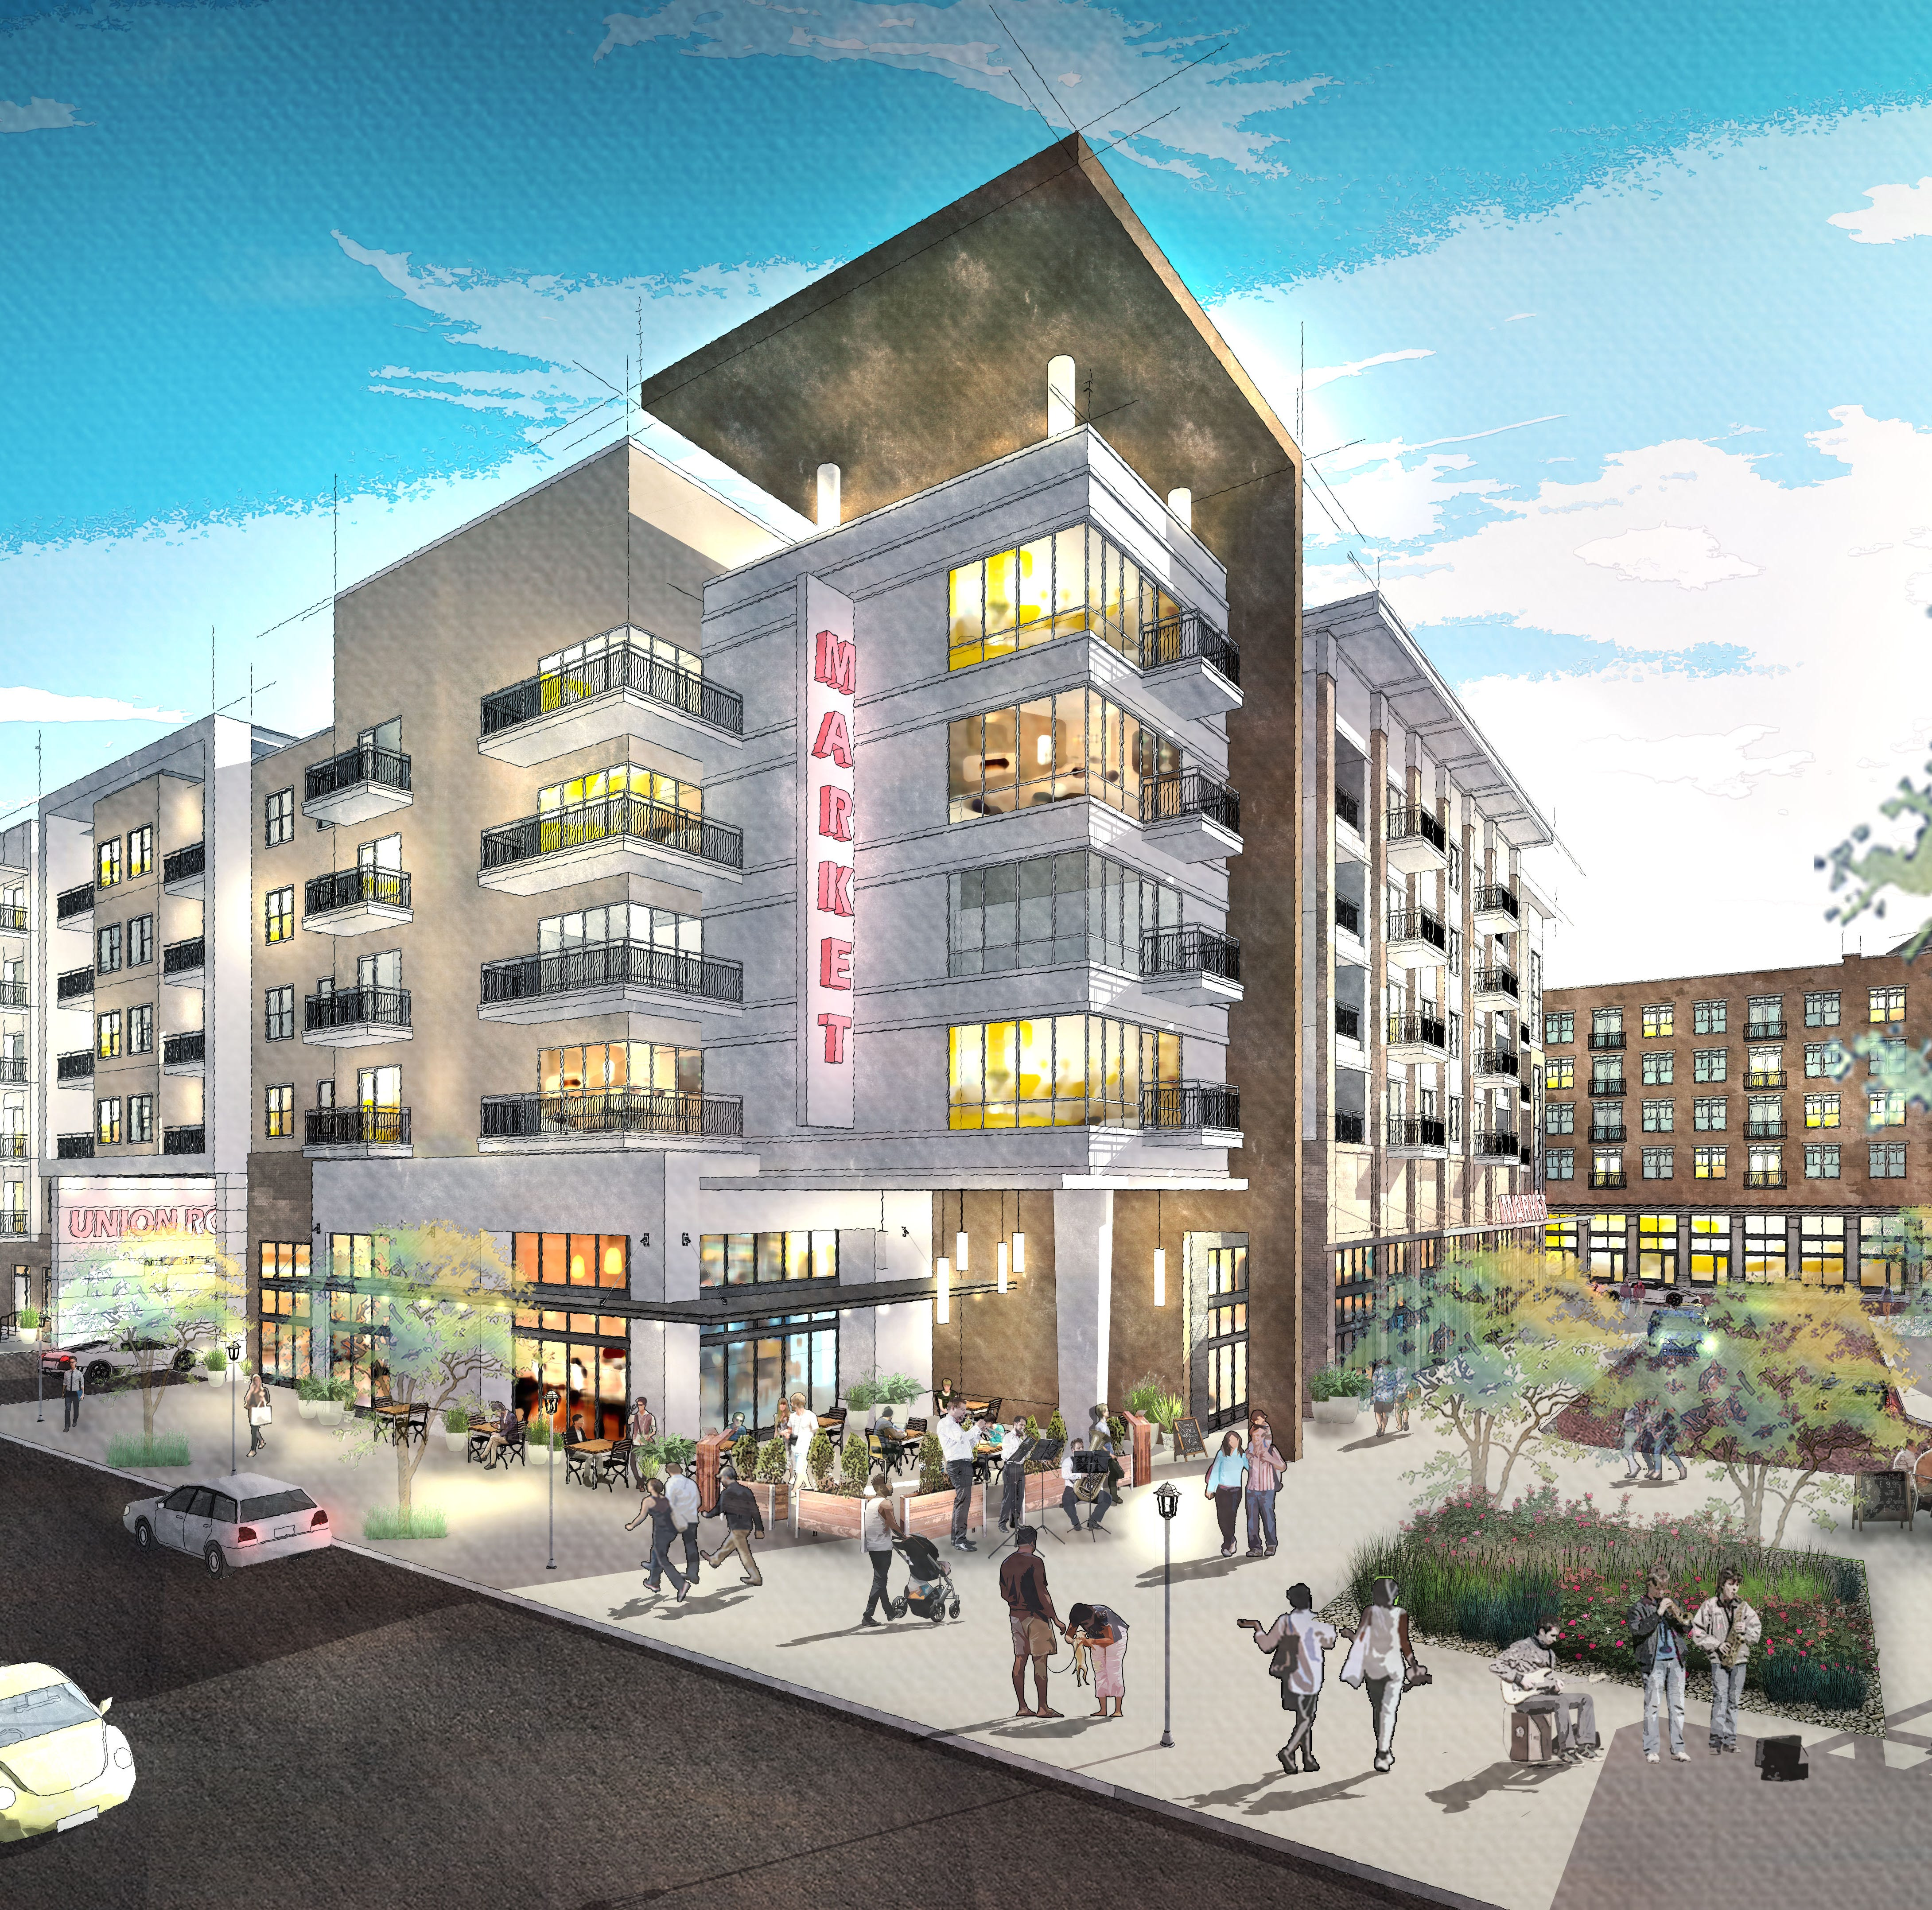 5 things to know about Union Row, a $950M development in Downtown Memphis